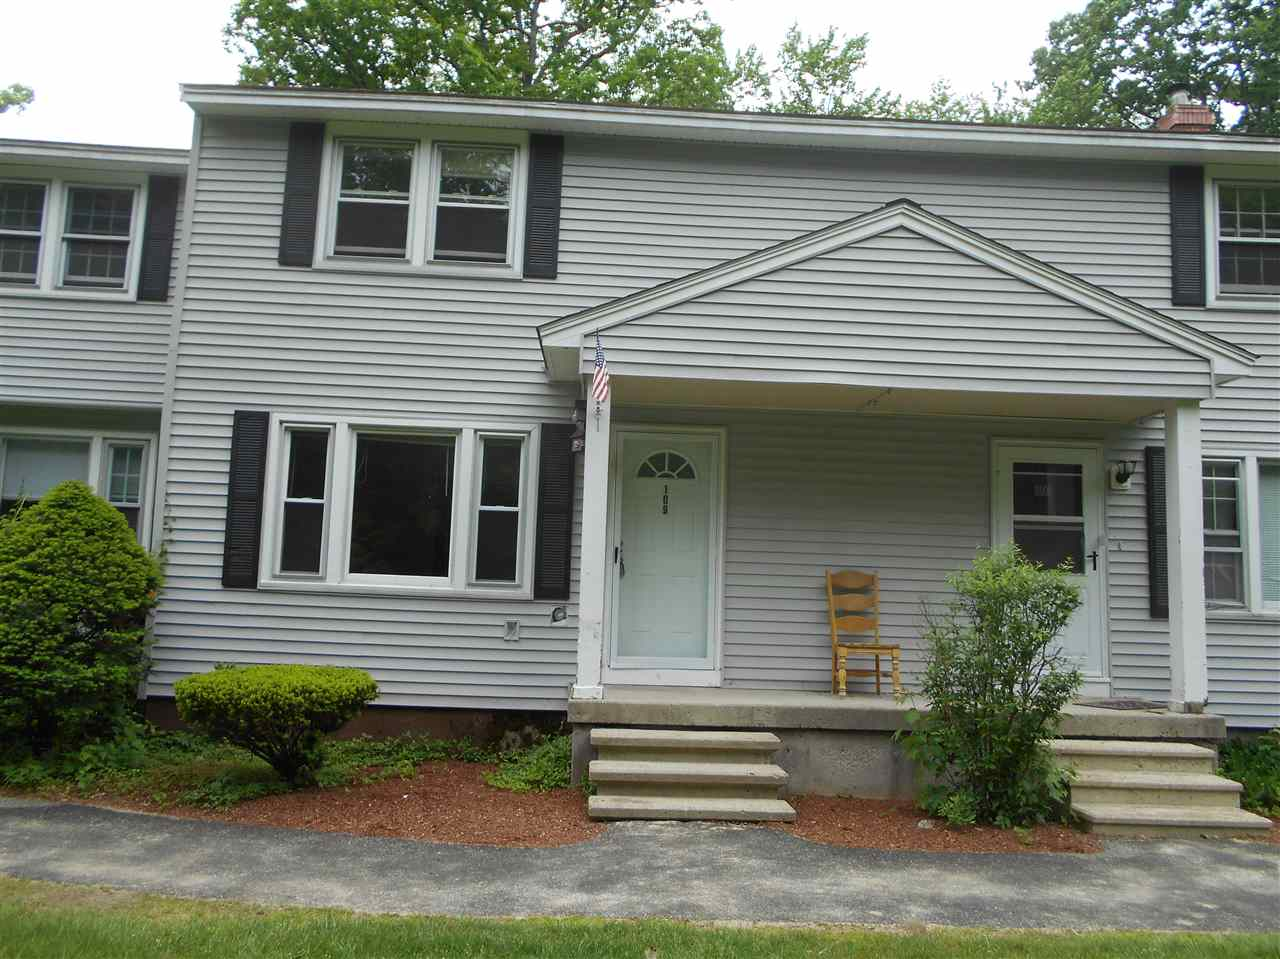 image of Londonderry NH Condo | sq.ft. 1560